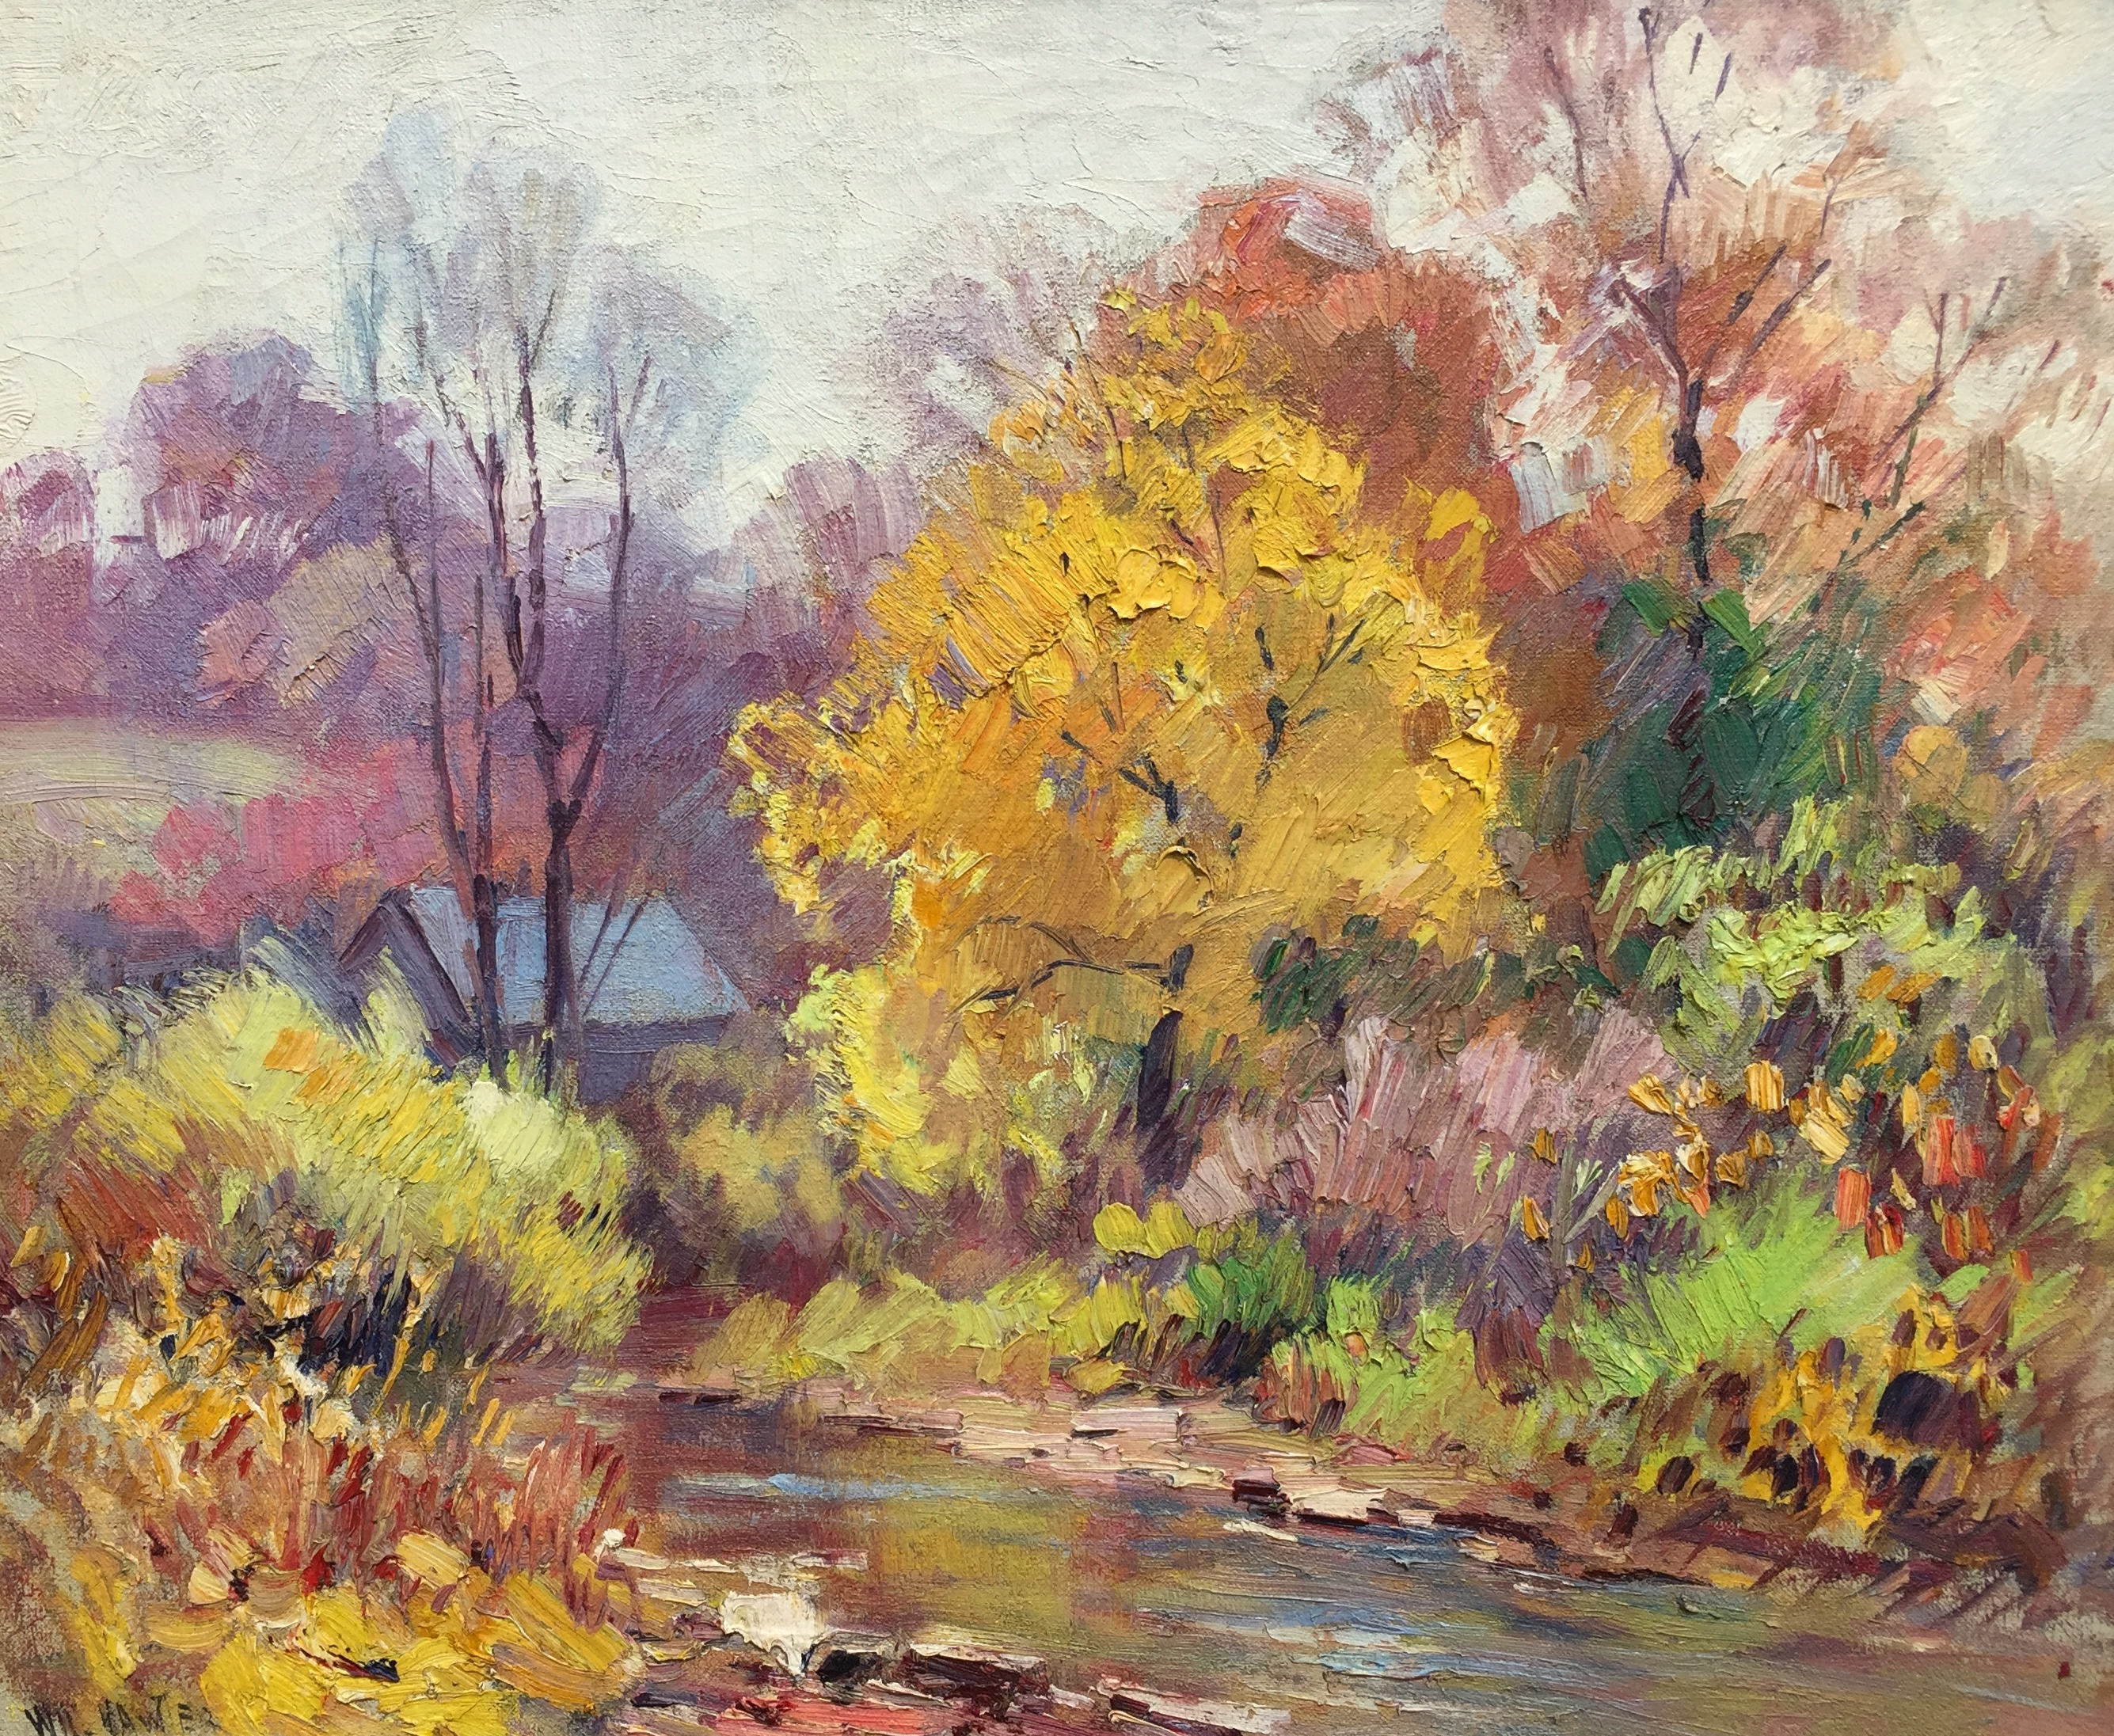 Autumn on the Creek